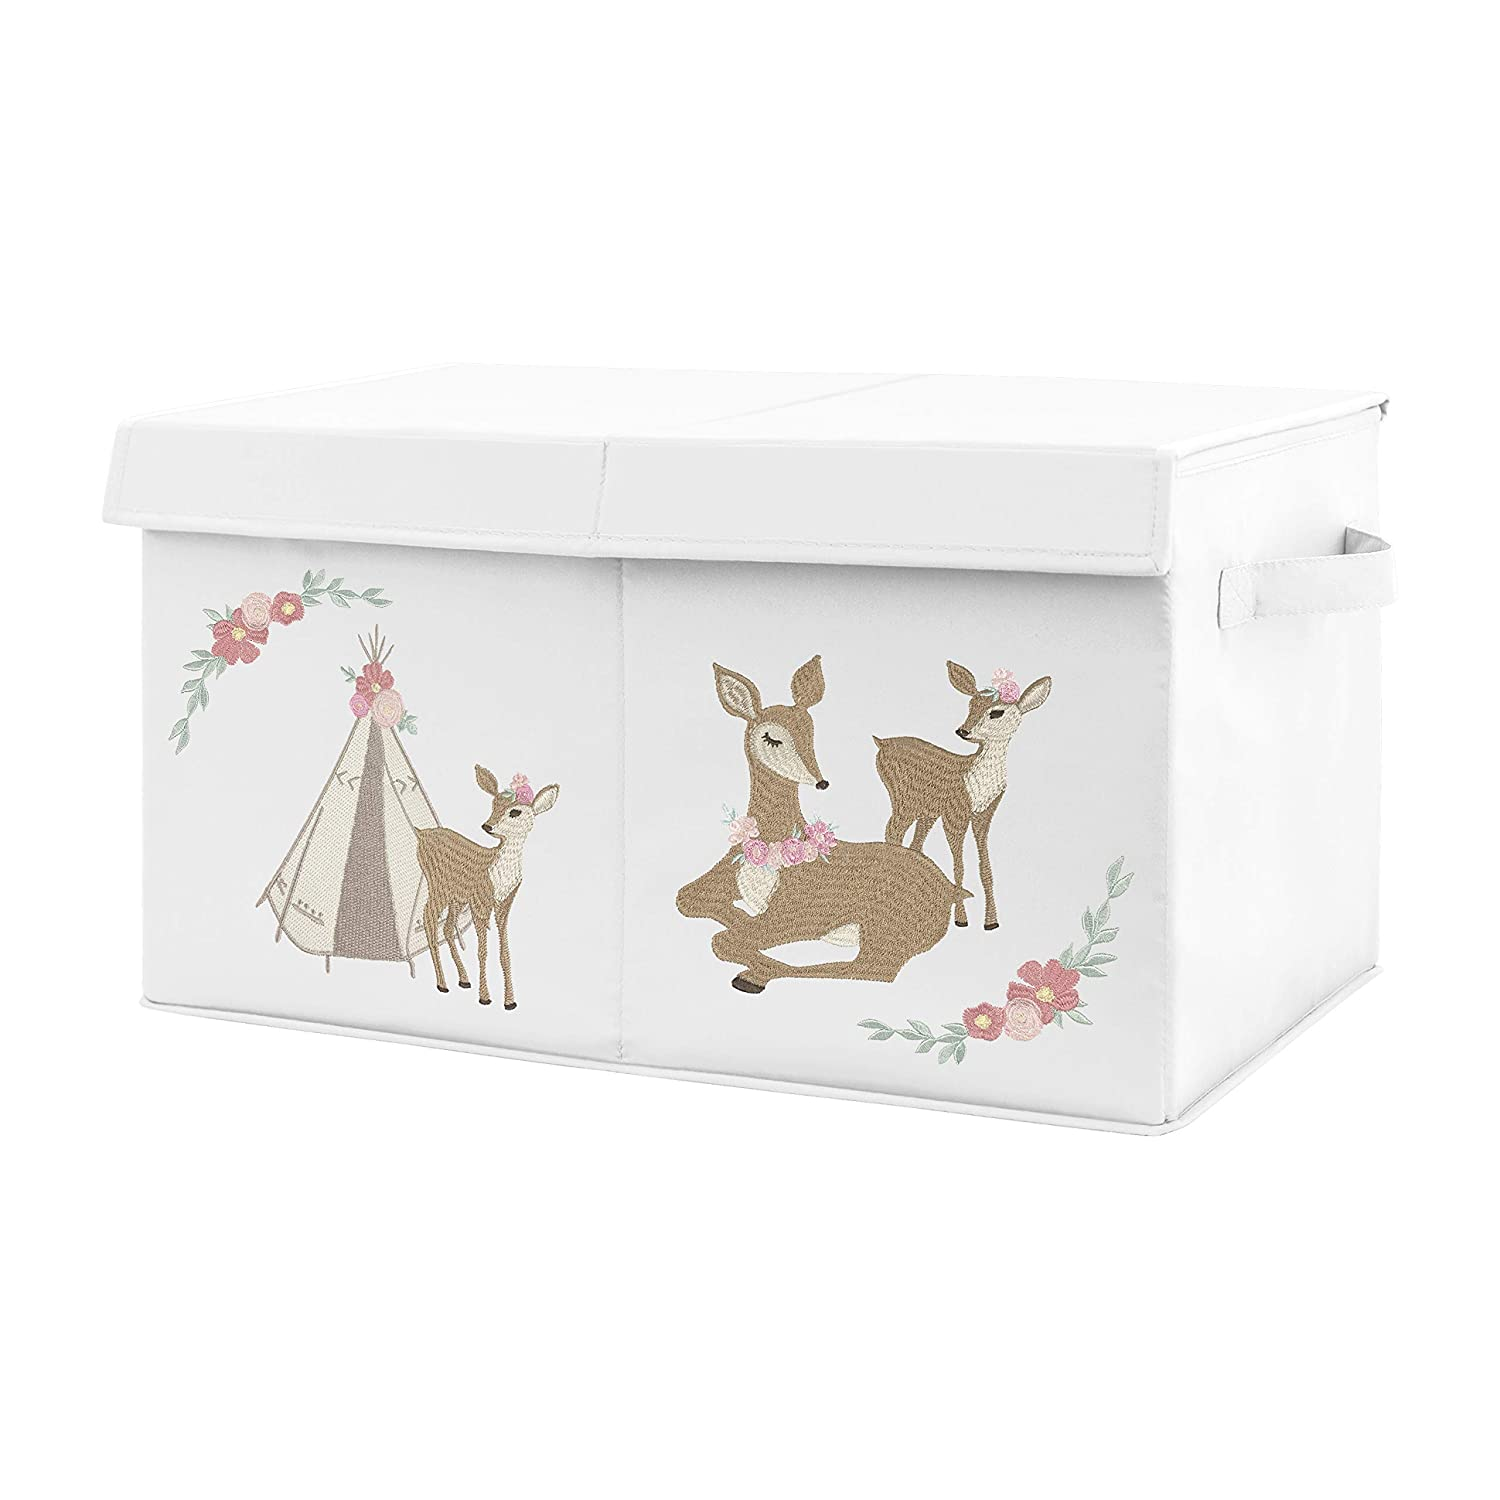 Sweet Jojo Designs Blush Pink, Mint Green and White Boho Girl Baby Nursery or Kids Room Small Fabric Toy Bin Storage Box Chest for Woodland Deer Floral Collection